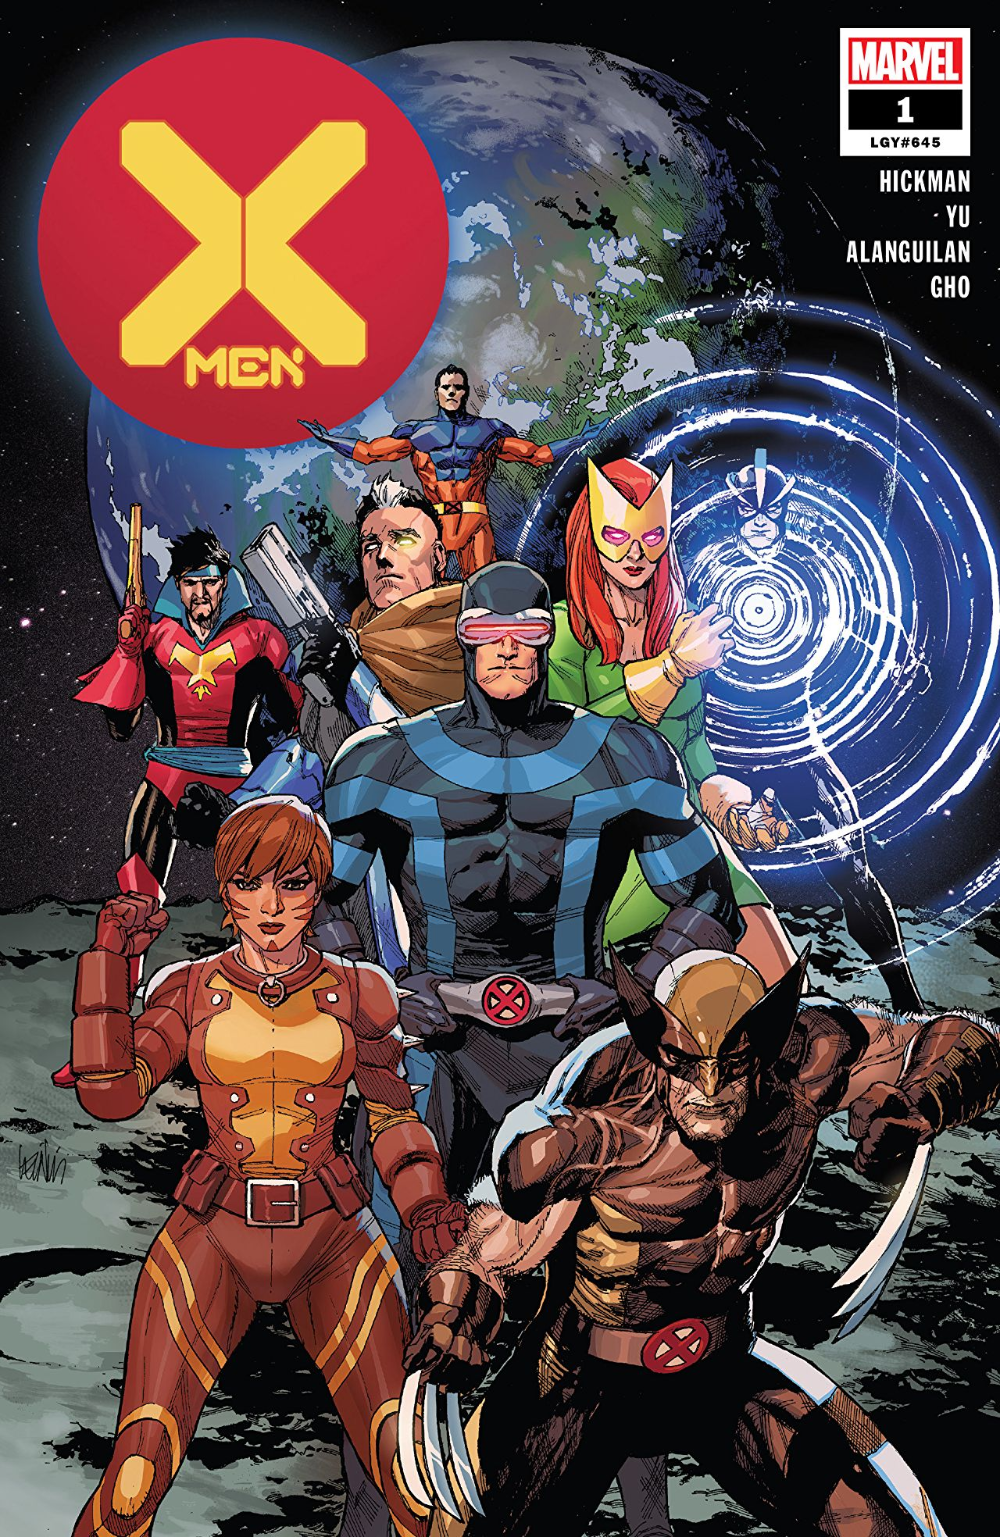 X Men 2019 1 Comics By Comixology In 2020 X Men The New Mutants Marvel